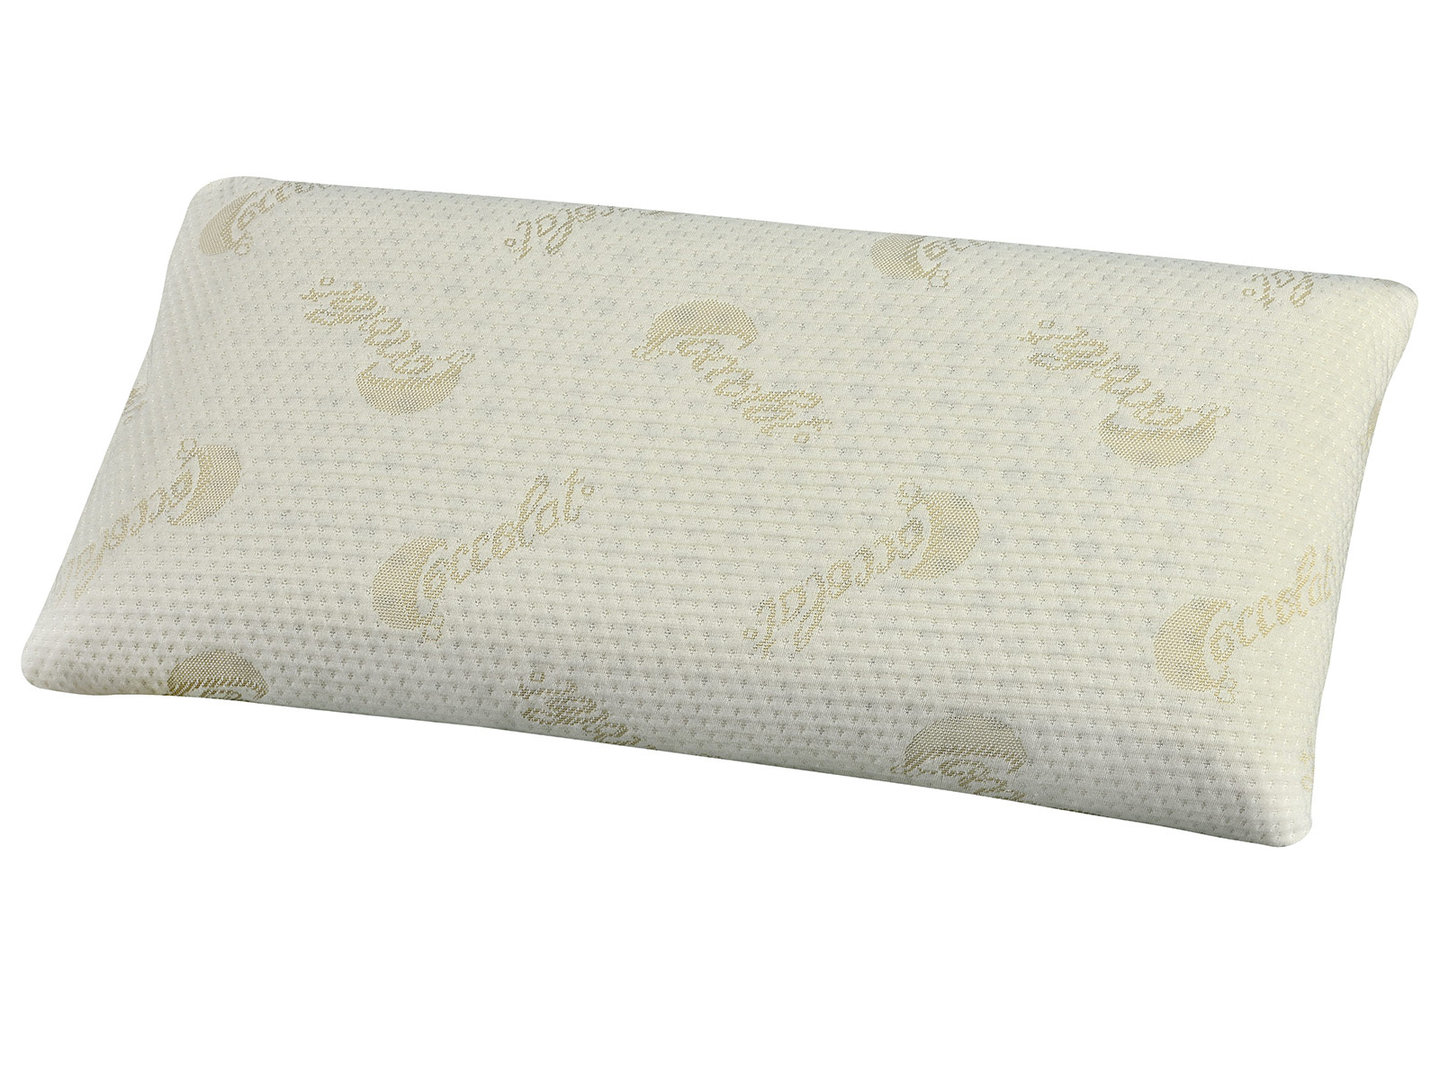 ALMOHADA LATEX 100% NATURAL- 90 cm